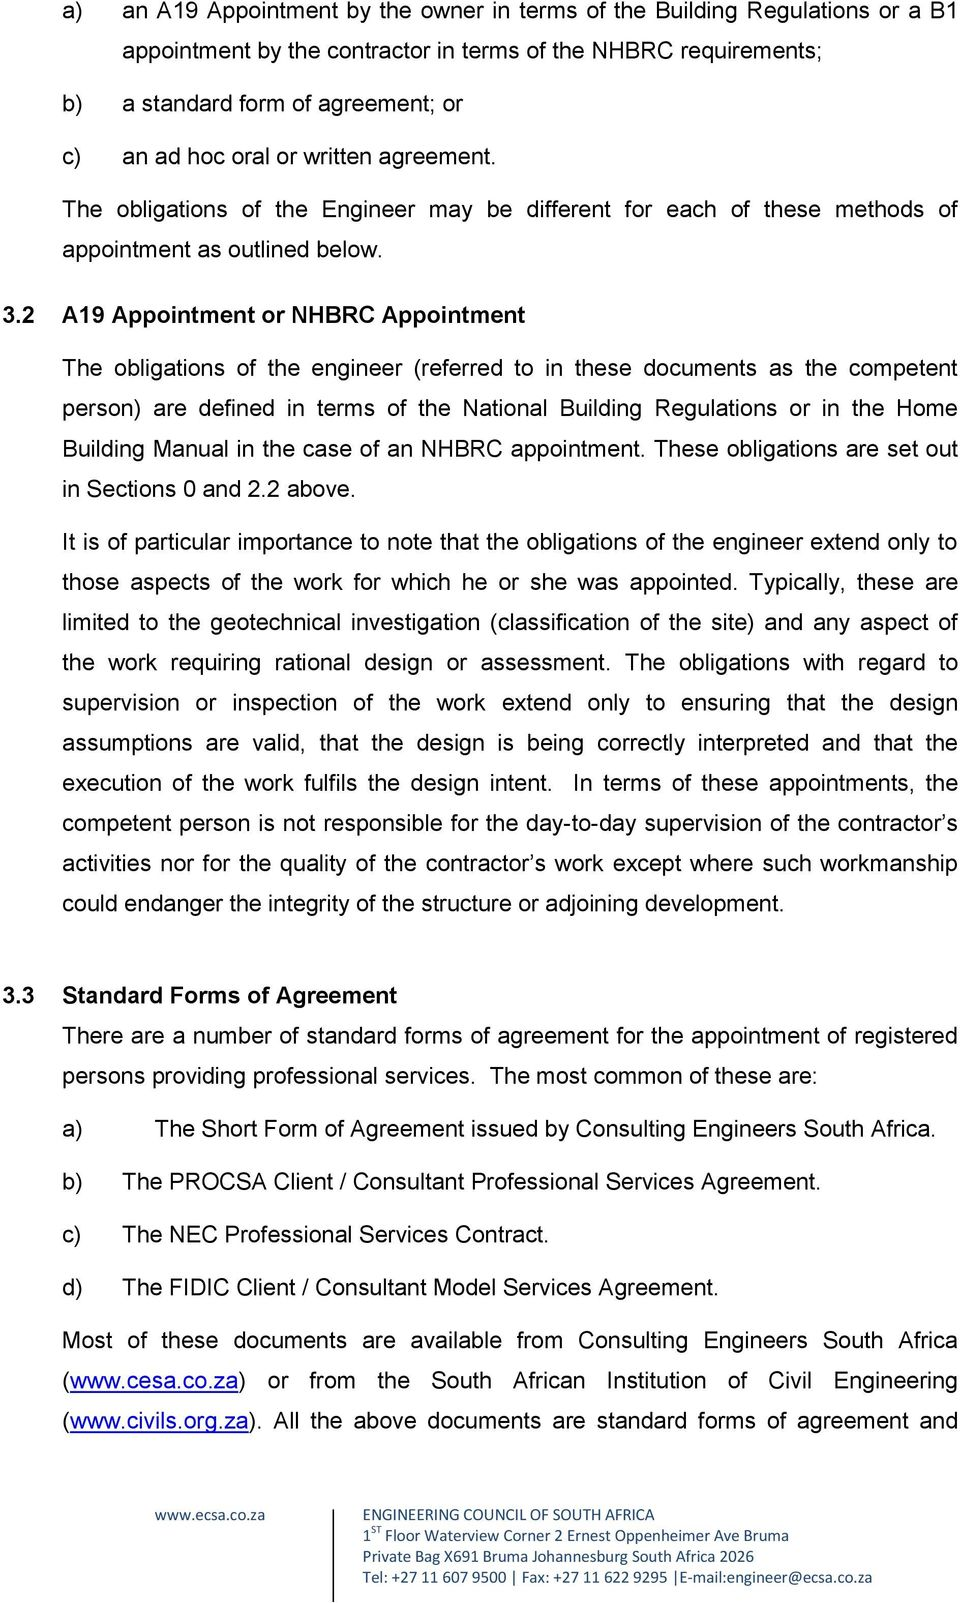 Engineering Council Of South Africa Pdf